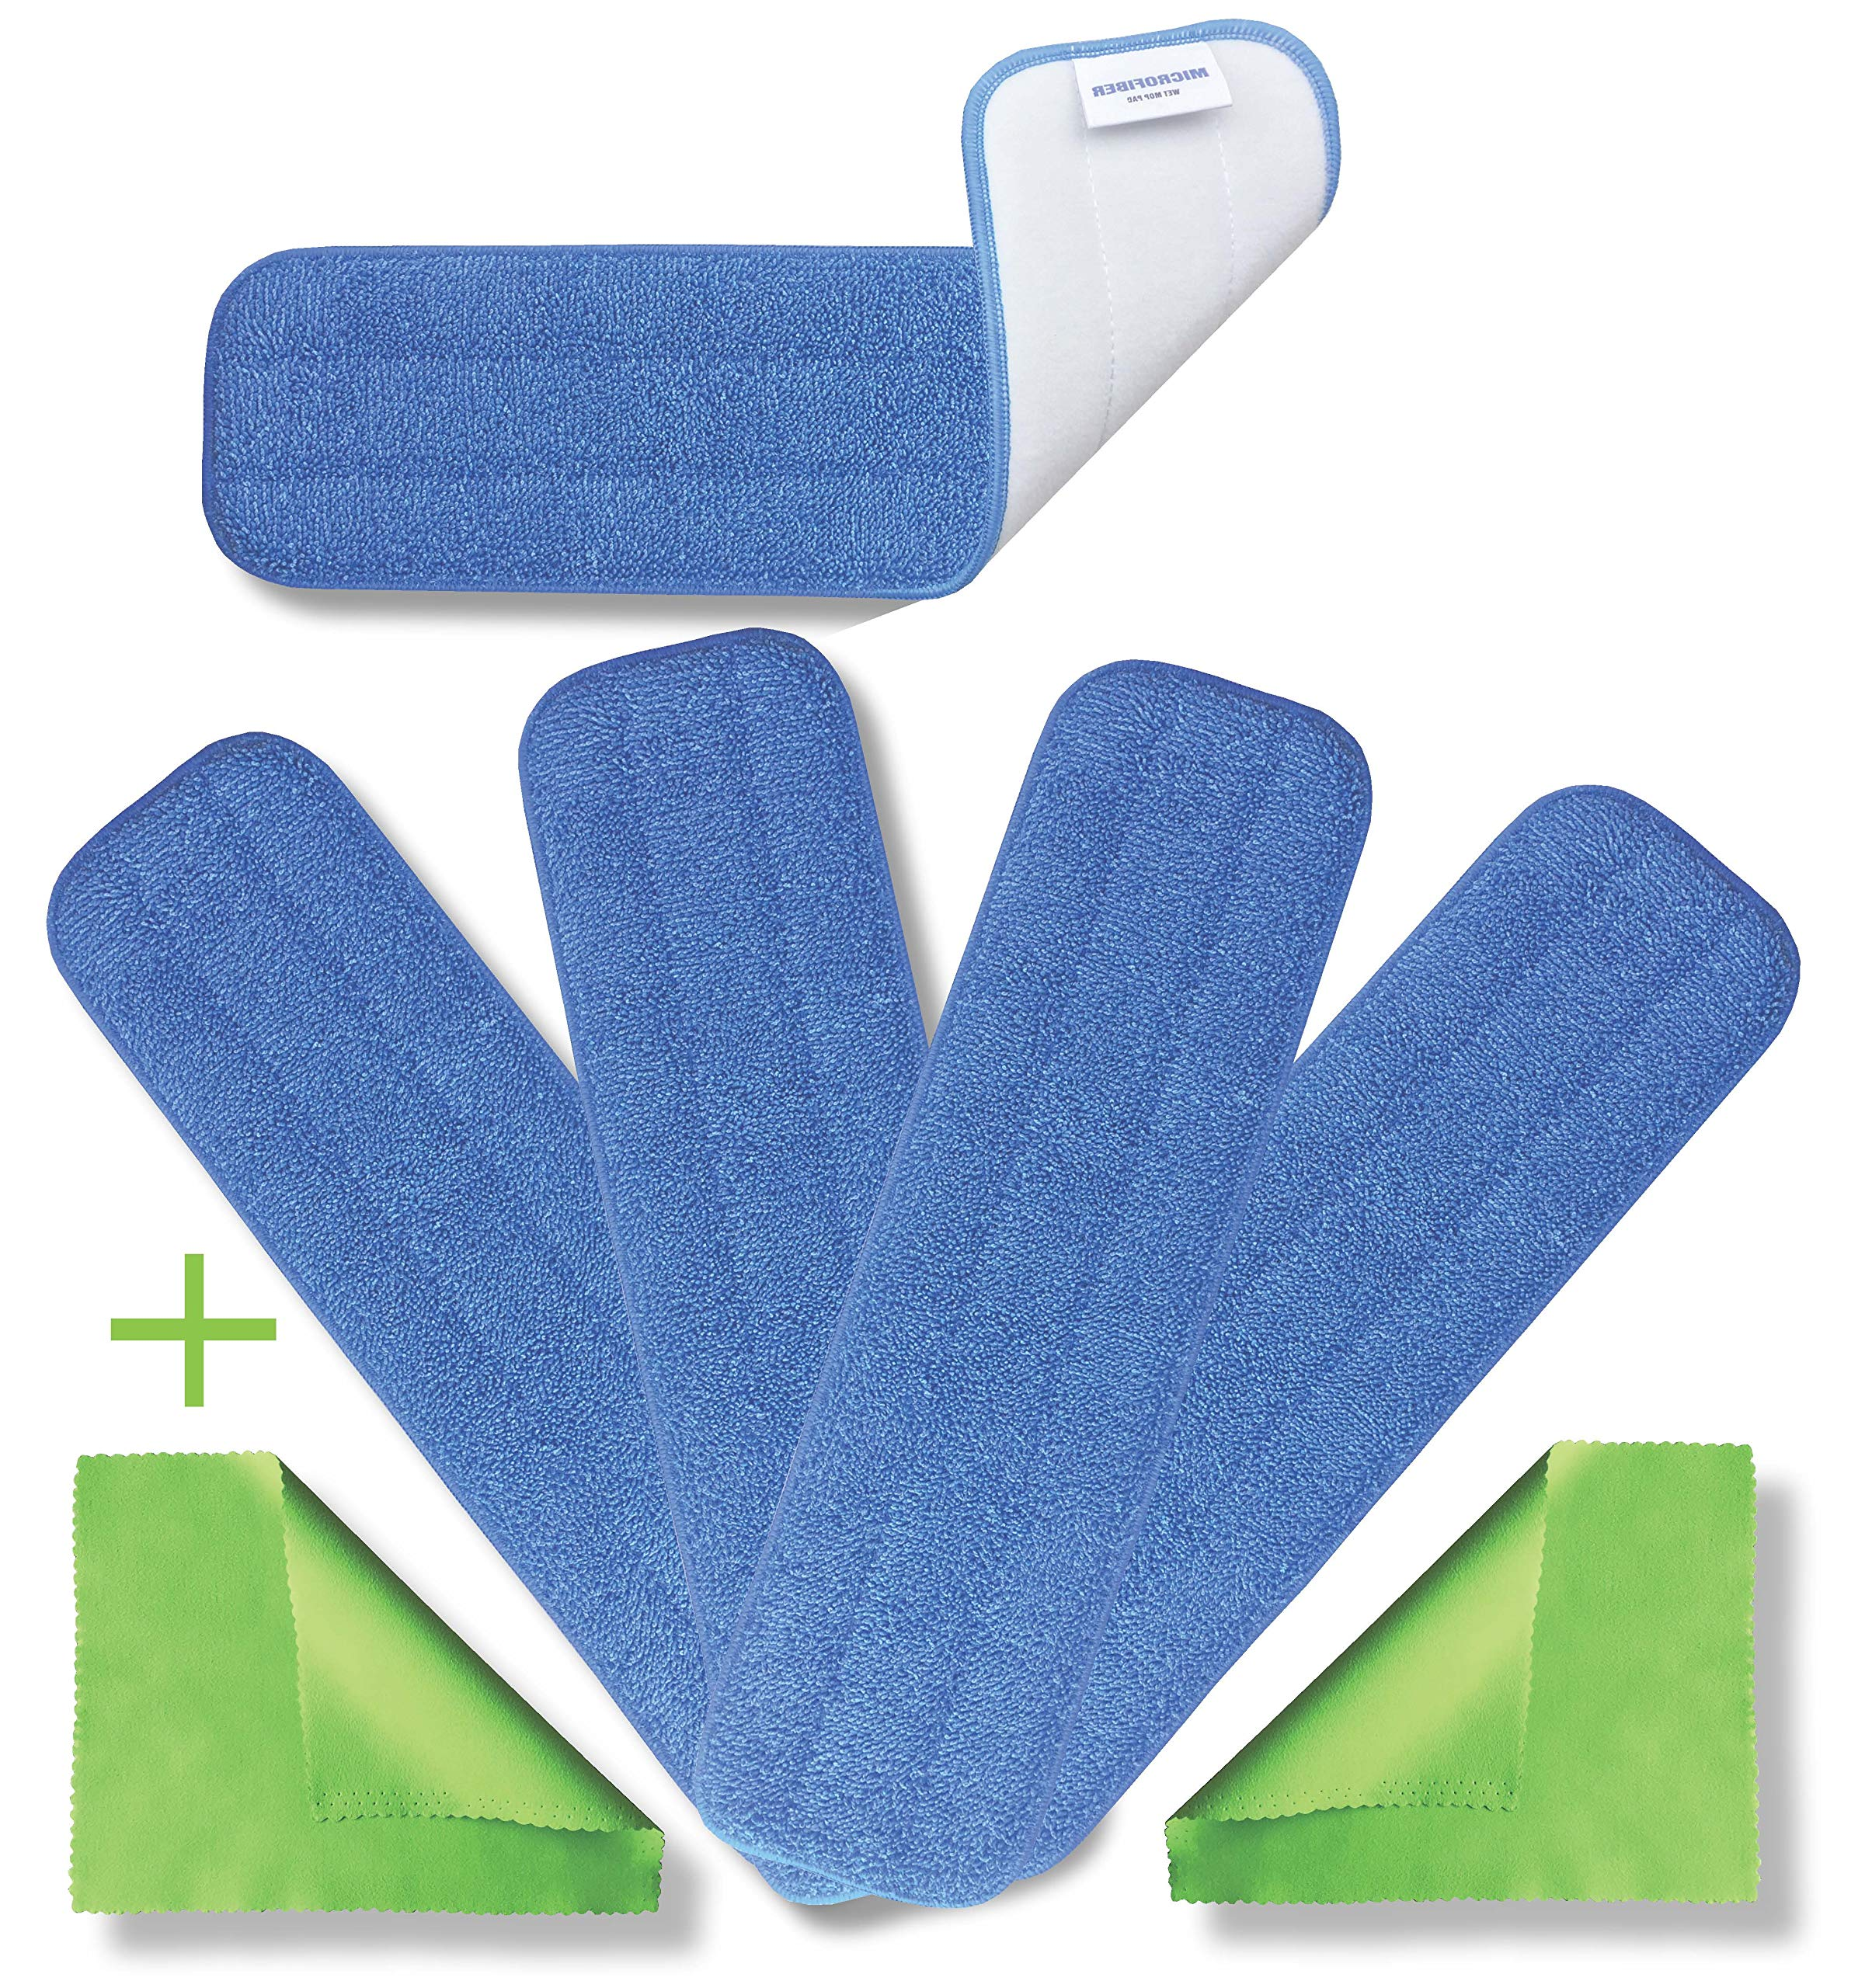 """Microfiber Pros Reusable 18"""" Mop Pads – 5-Pack with 2 Bonus Cloths - Commercial Grade 450 GSM Flat Replacement Heads for Wet Or Dry Floor Cleaning and Scrubbing"""